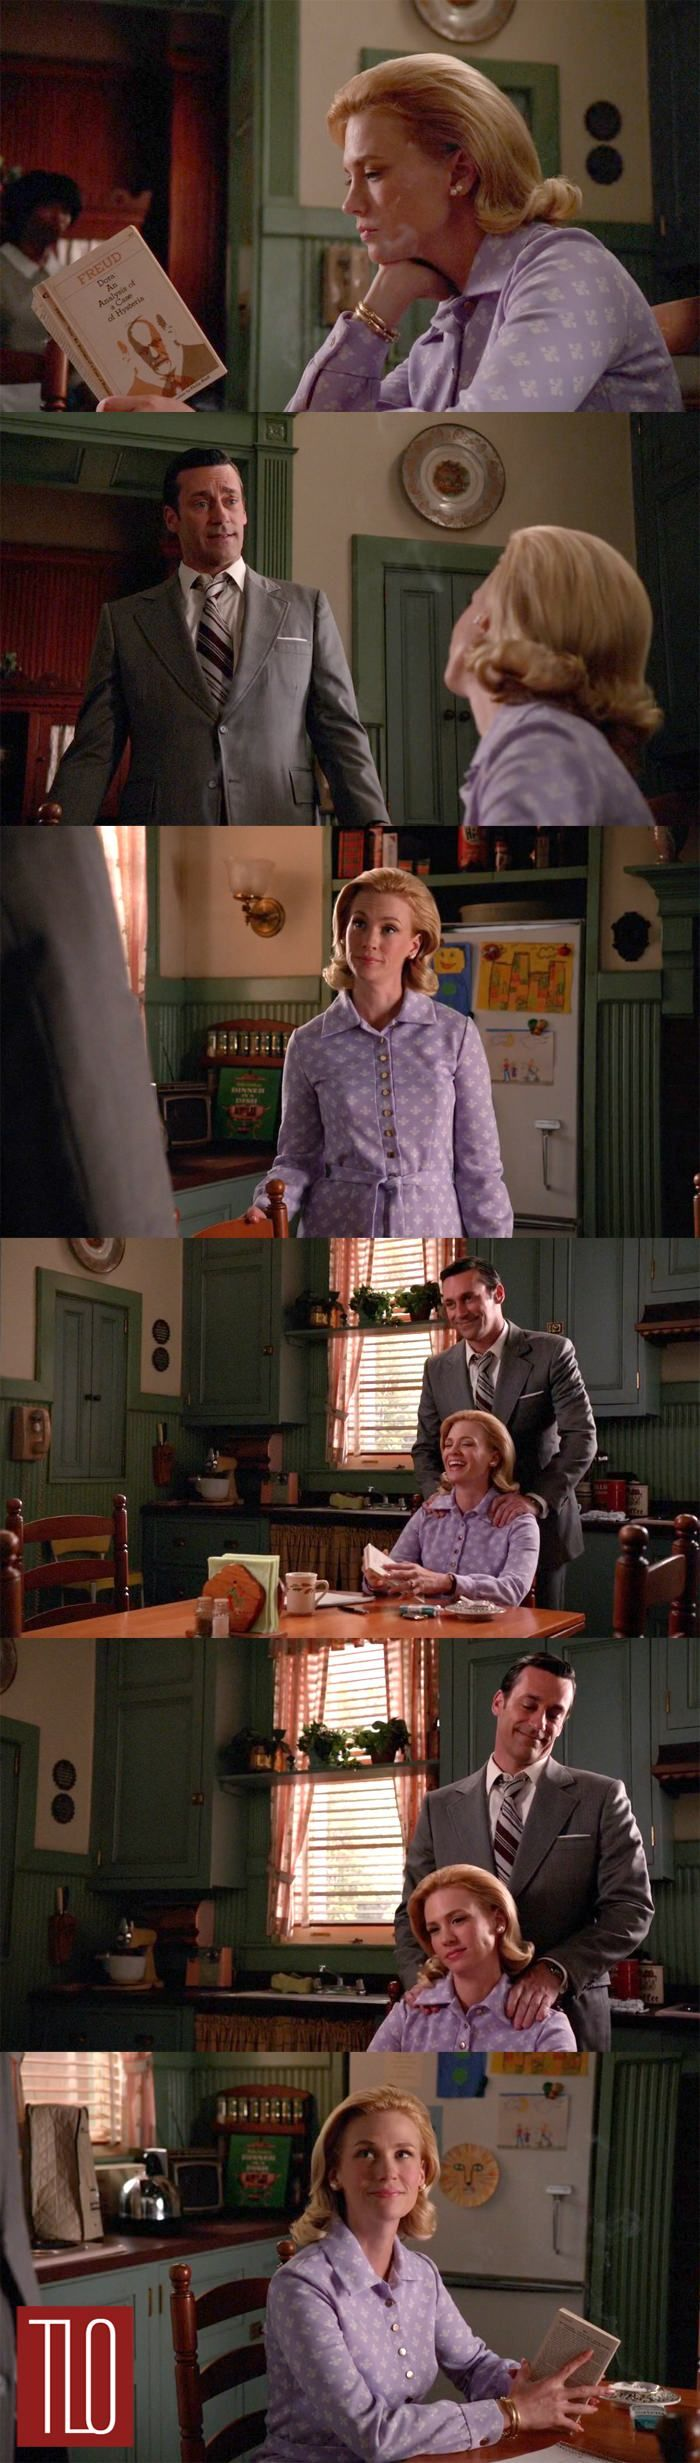 Mad-Men-Season-7-Episode-12-Mad-Style-Costumes-Tom-Lorenzo-Site-TLO (17)